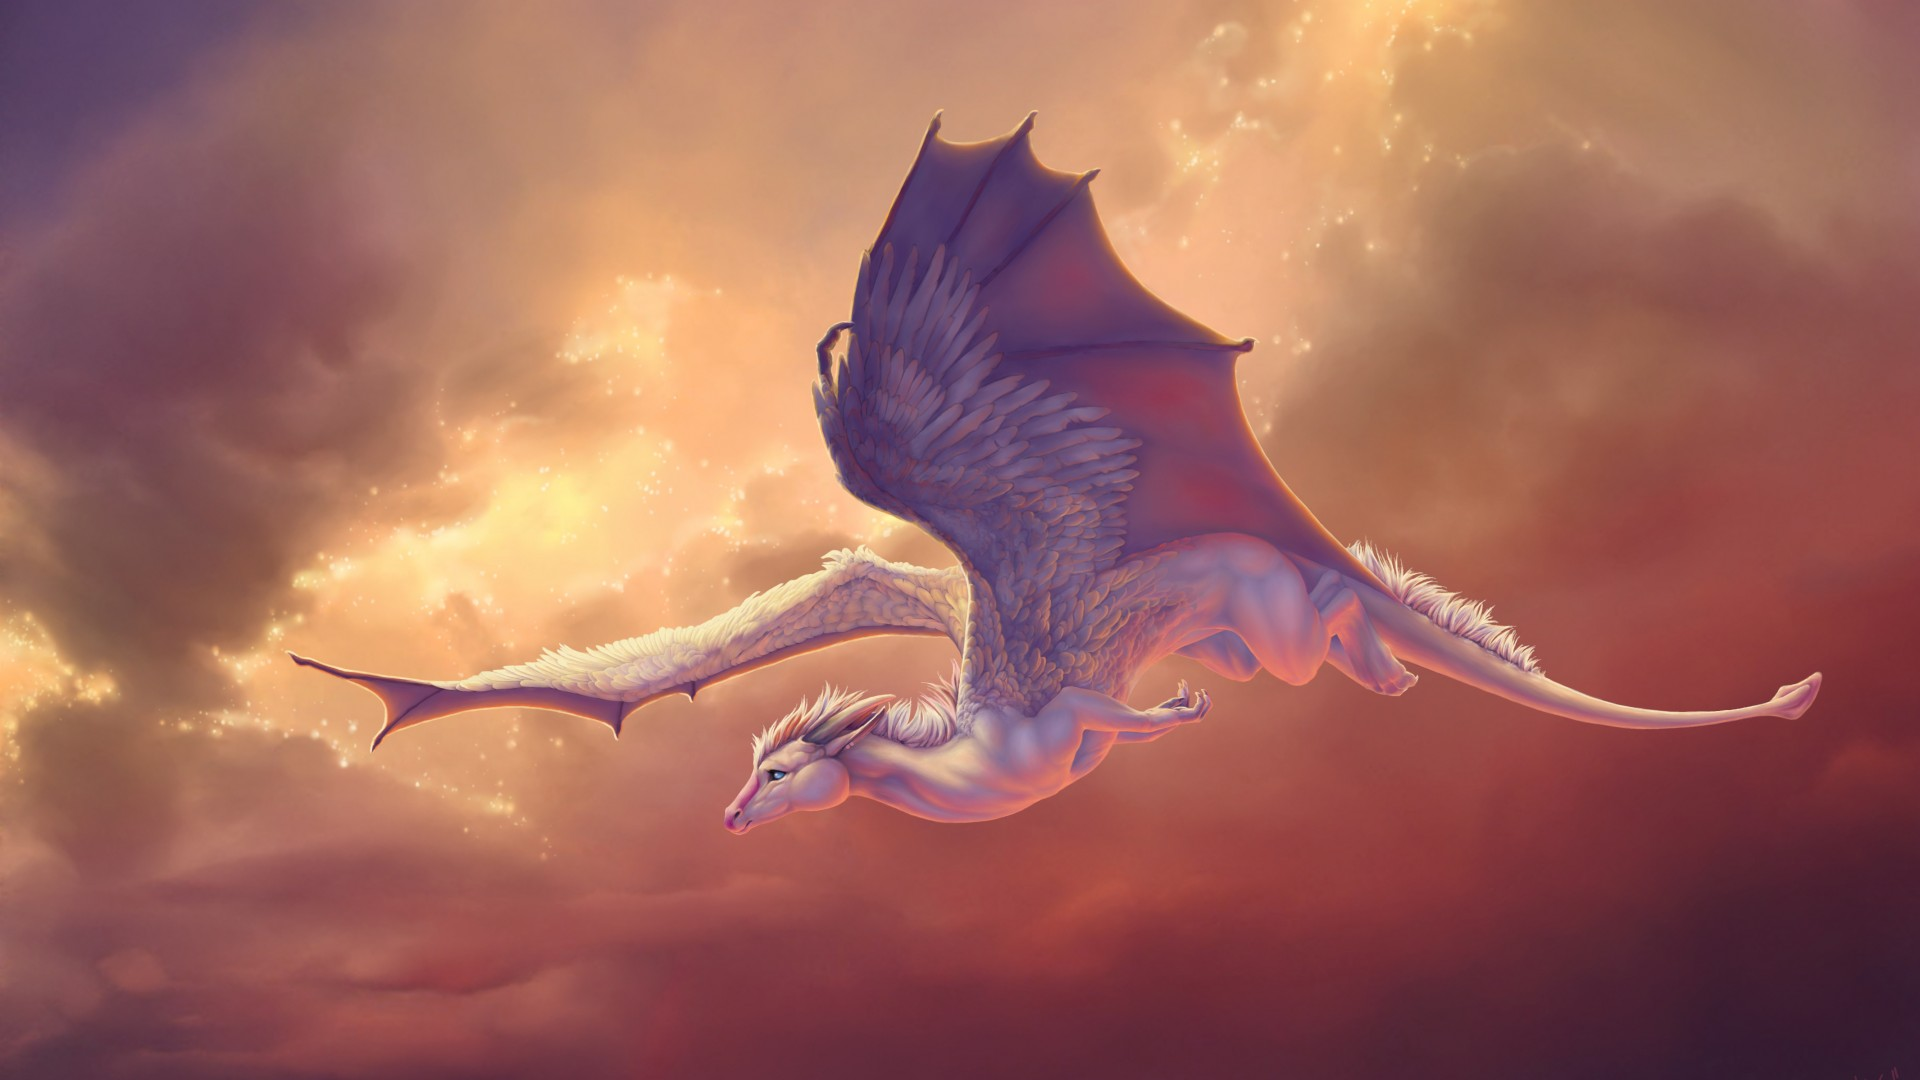 Dragon, 4k, HD wallpaper, wings, sky, pegasus, creation, clouds, art (horizontal)